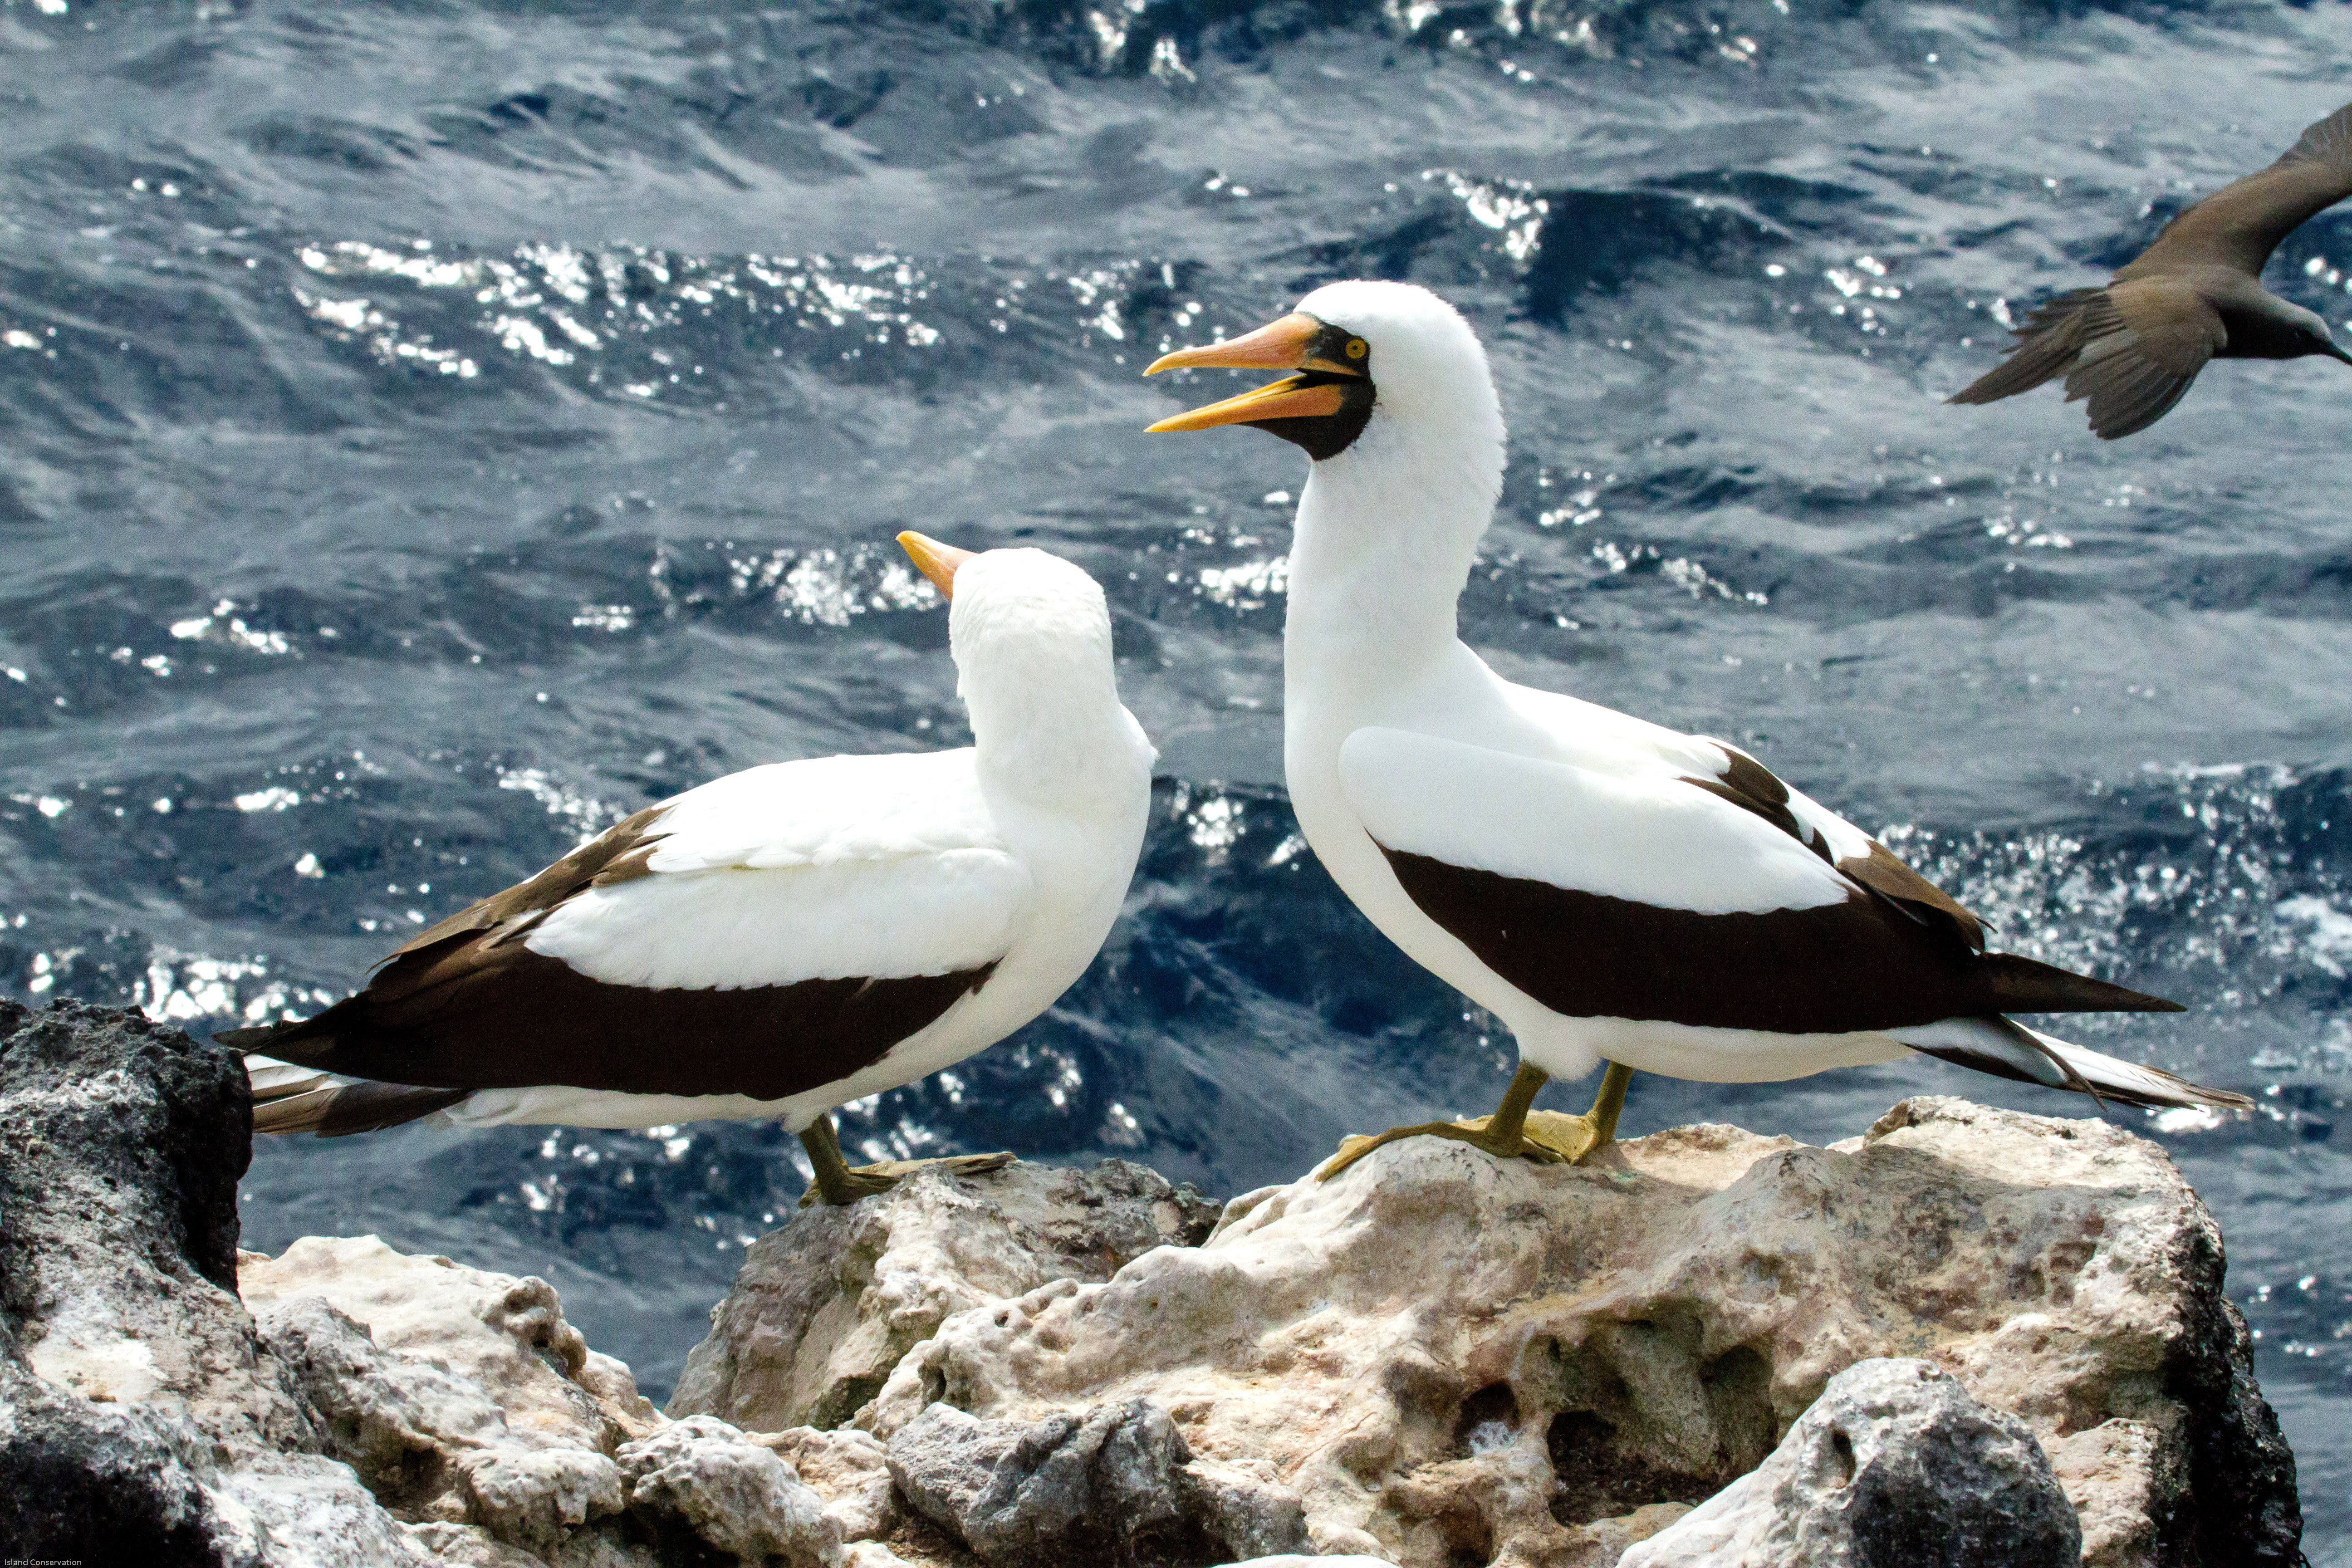 island-conservation-lord-howe-island-masked-booby